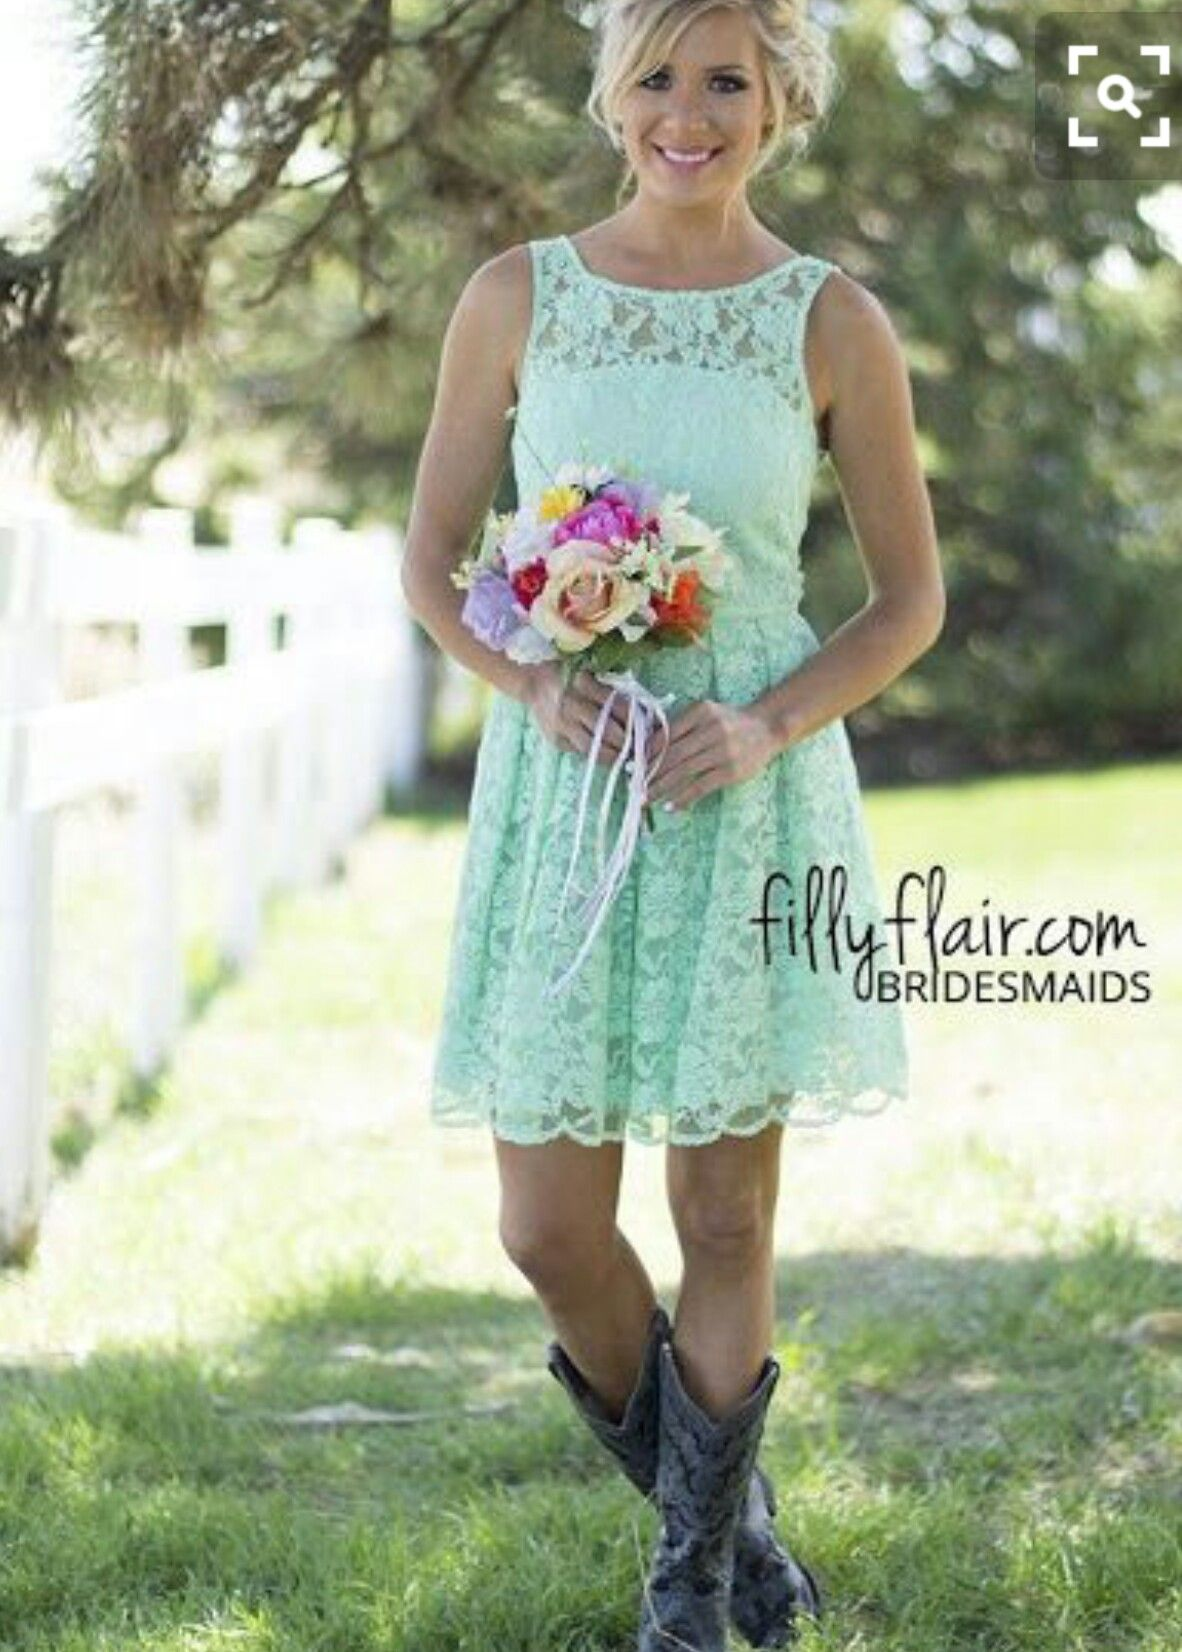 Pin by Courtney Hamel on Hamel Wedding 2017 Ideas | Pinterest | Wedding